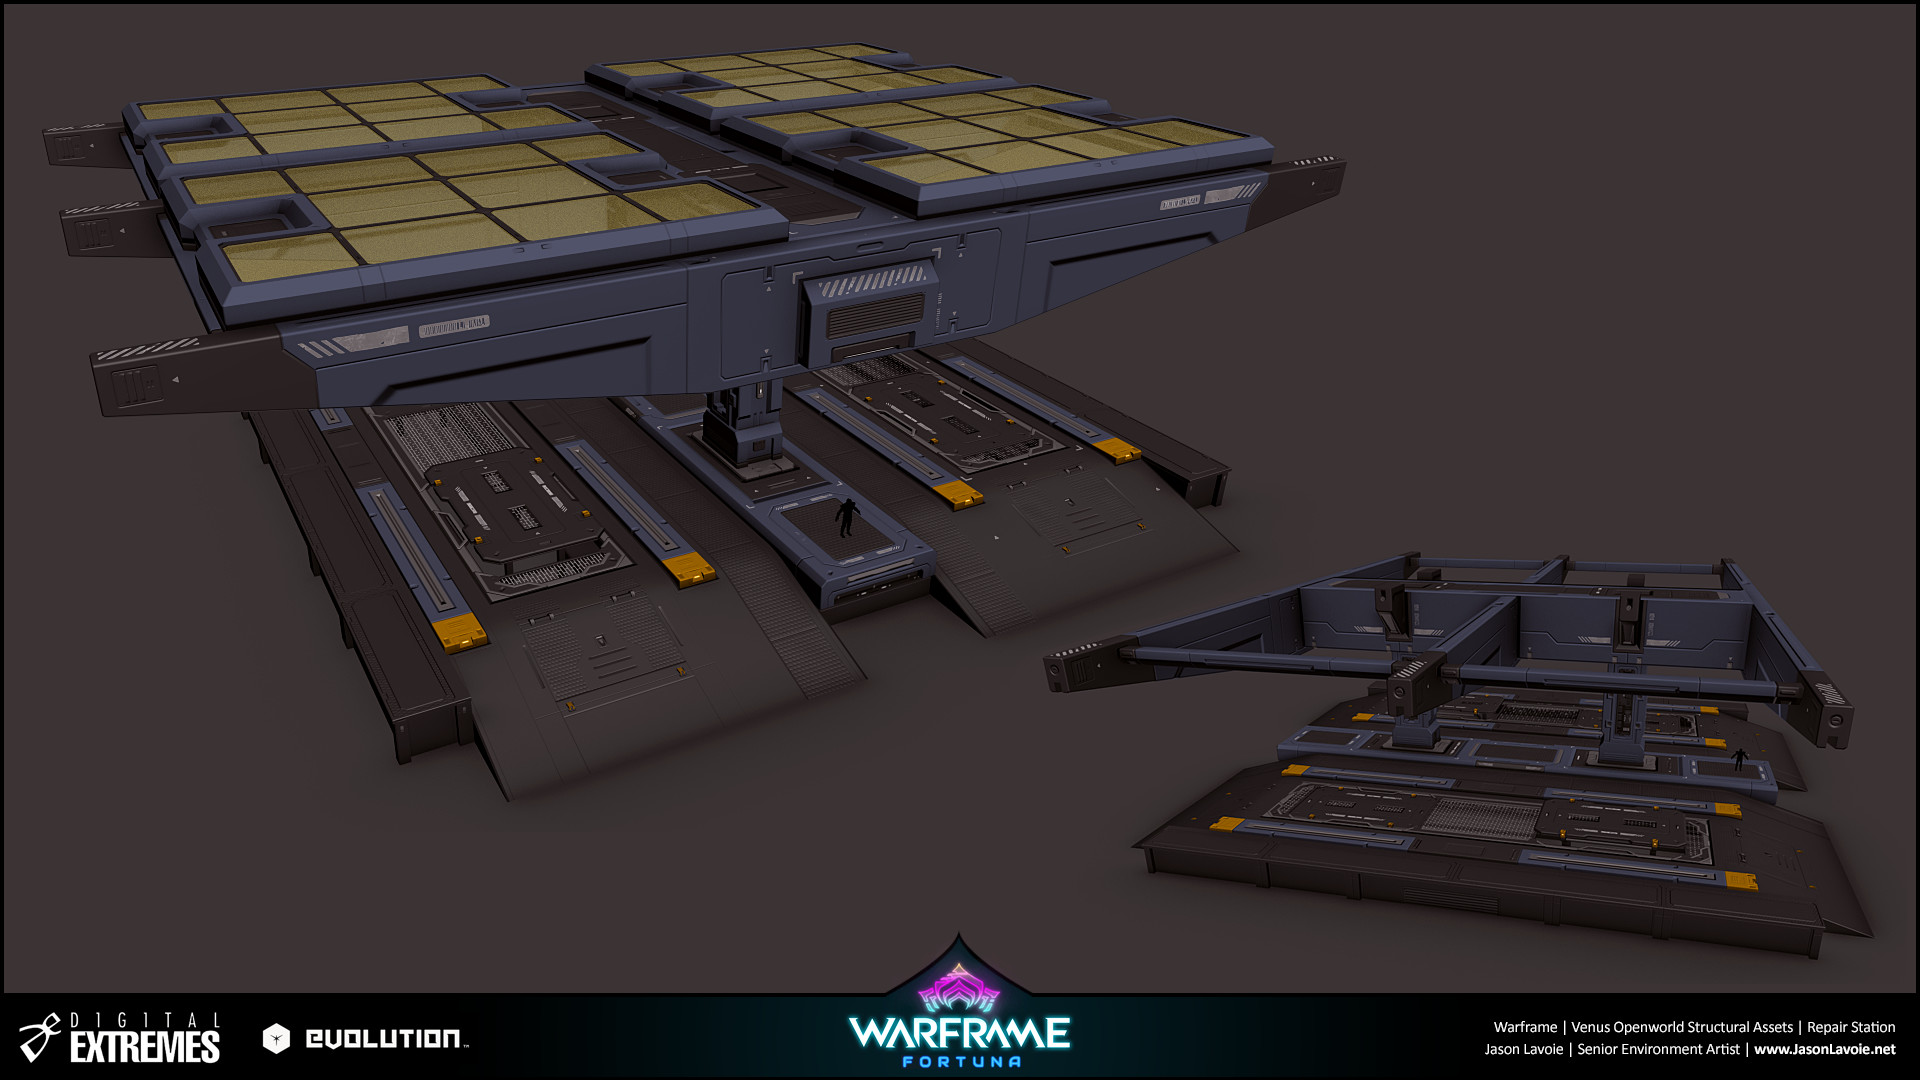 Jason lavoie jasonlavoie warframefortuna repairstation 3dmax